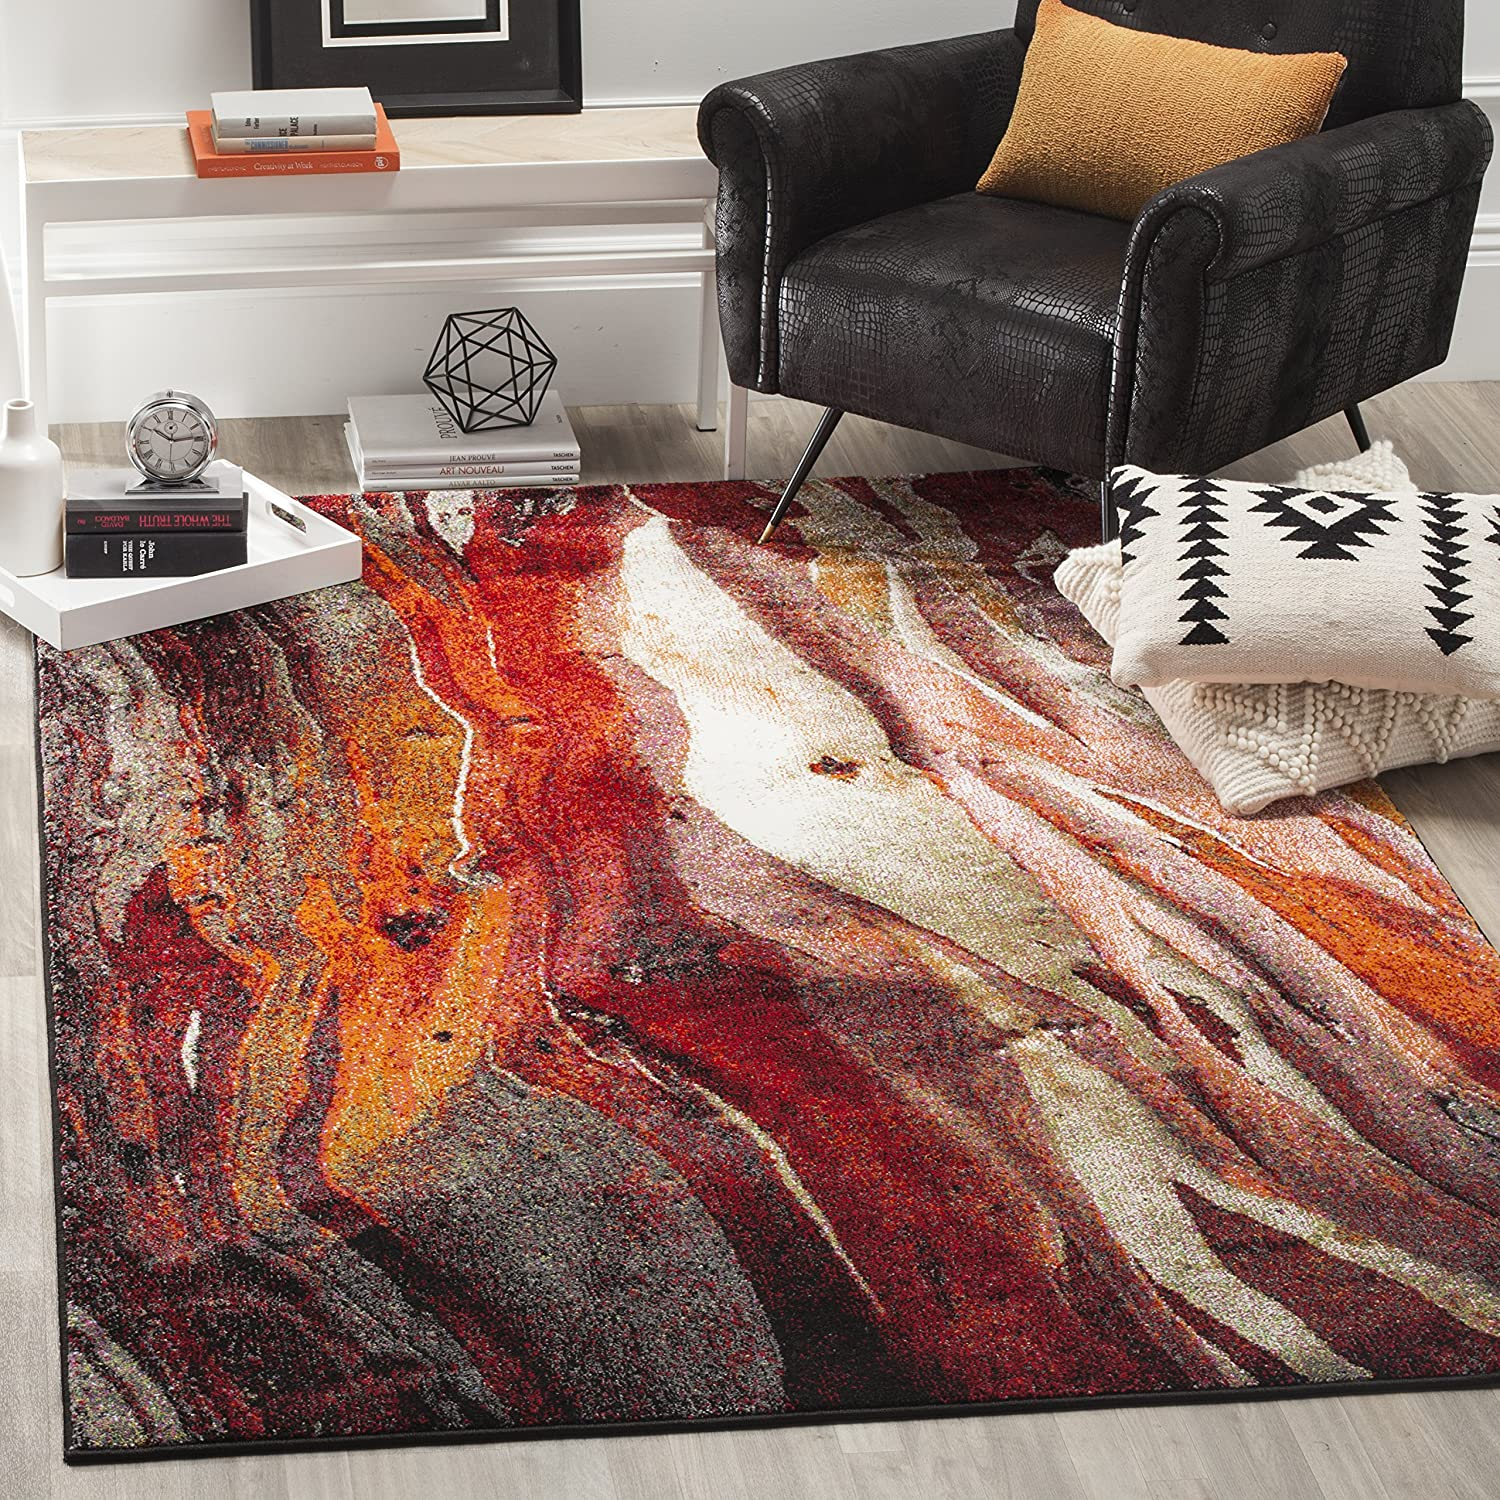 Safavieh Glacier Collection depot GLA126A Over item handling Non-Shedding Modern Abstract